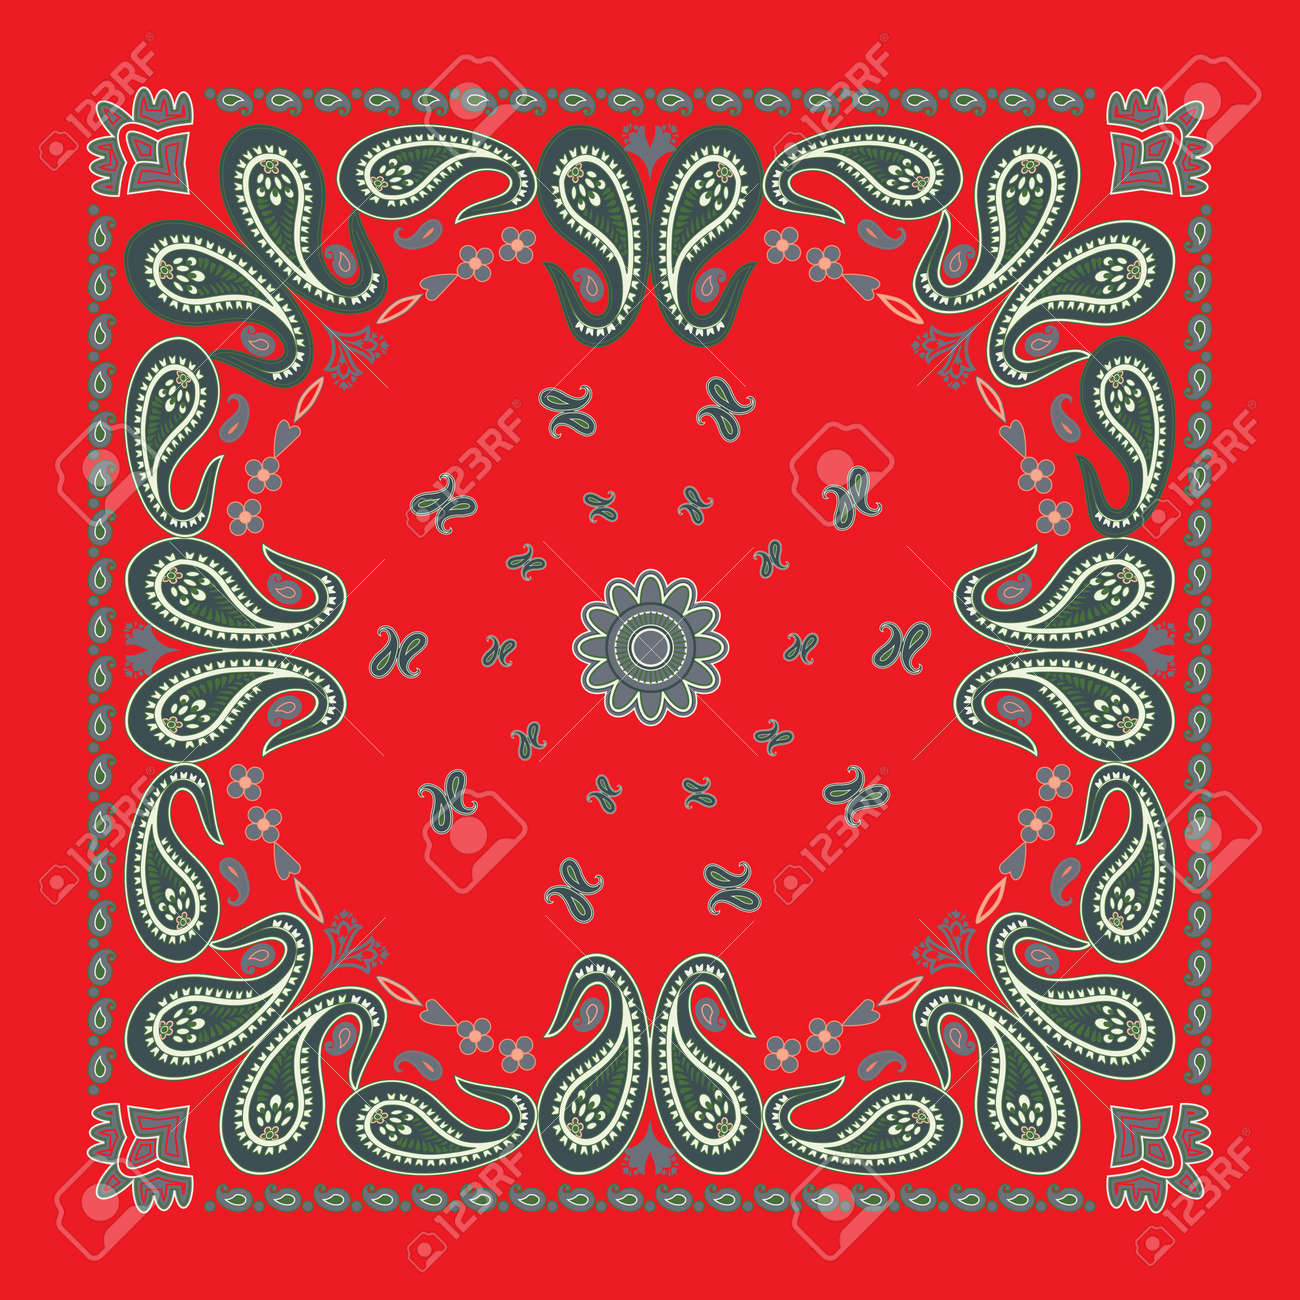 Classic Red Paisley Bandana Design Stock Vector - 10223674